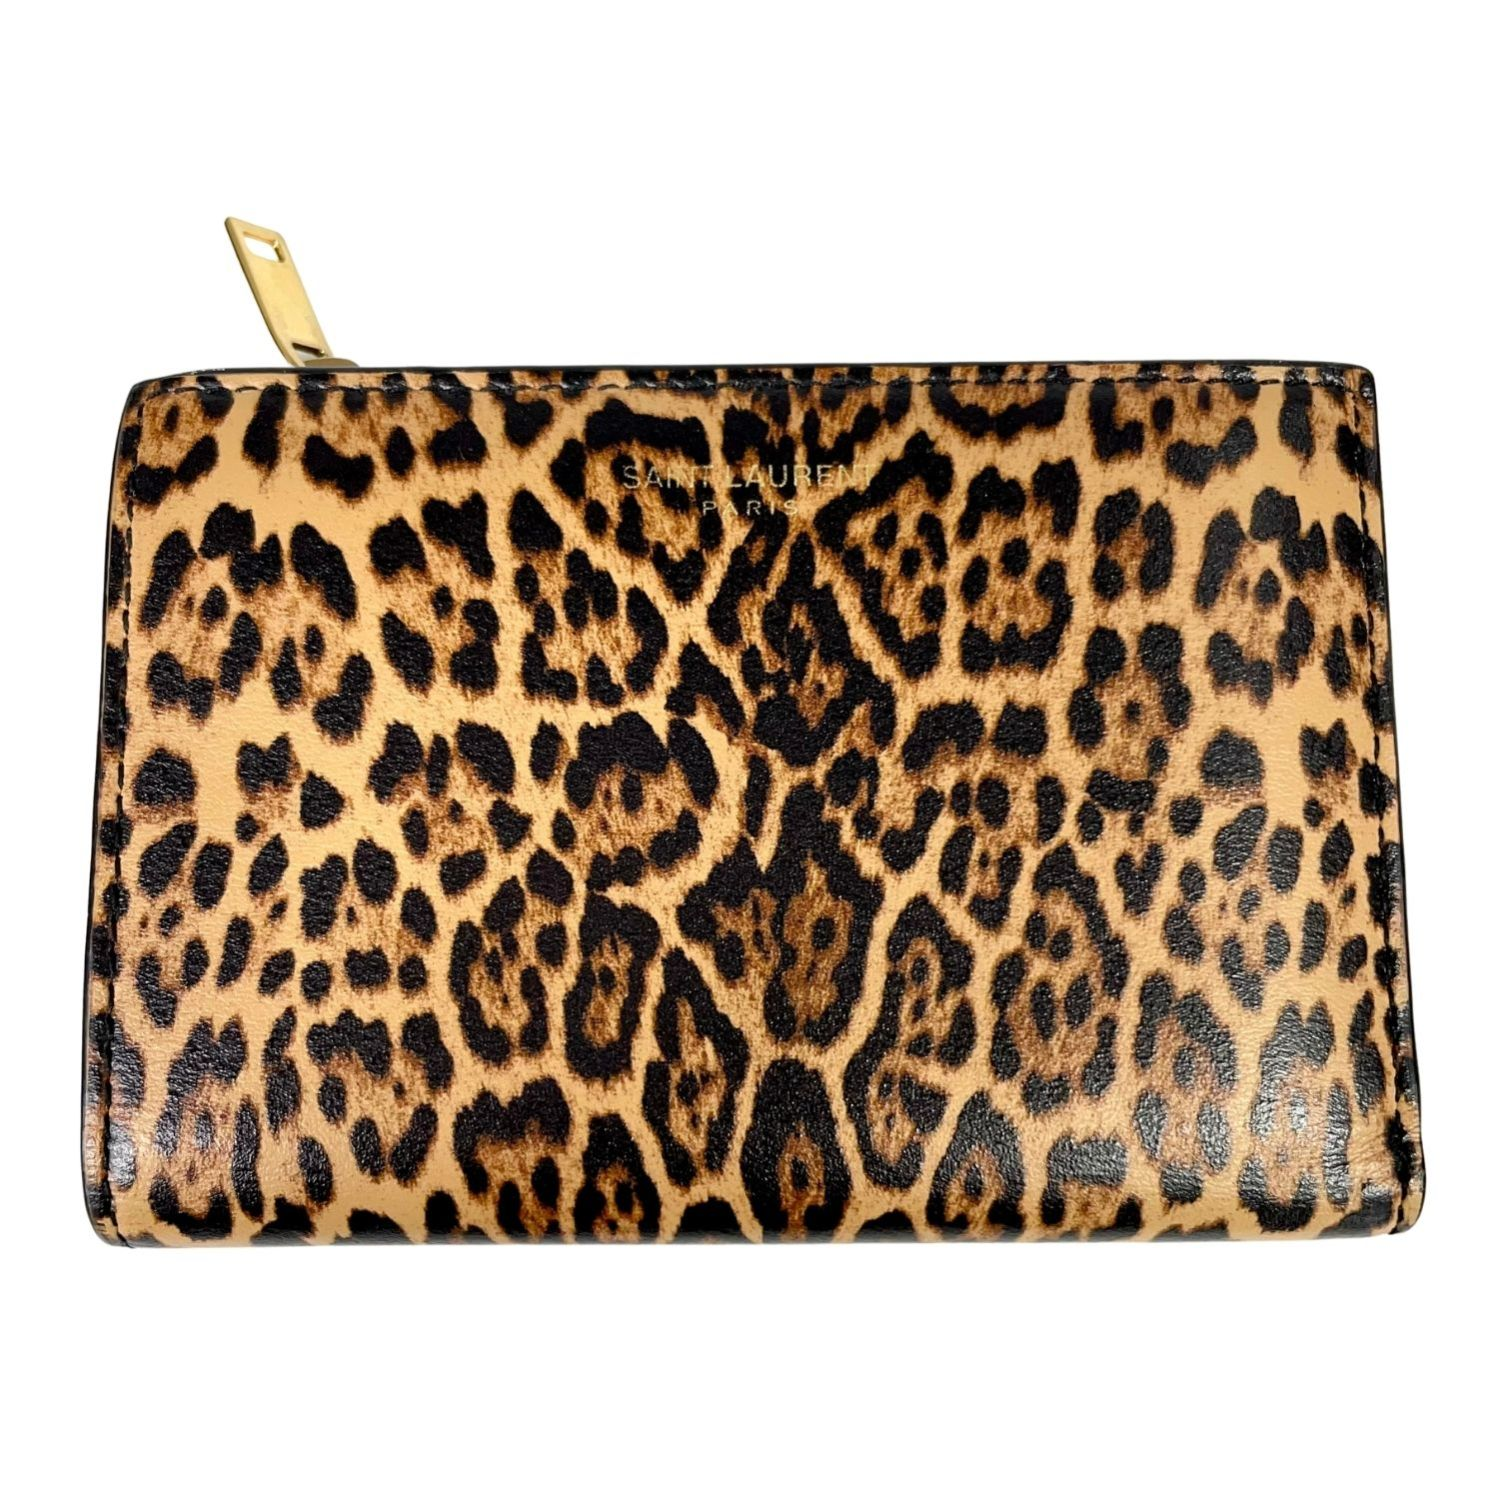 Carteira Saint Laurent Animal Print